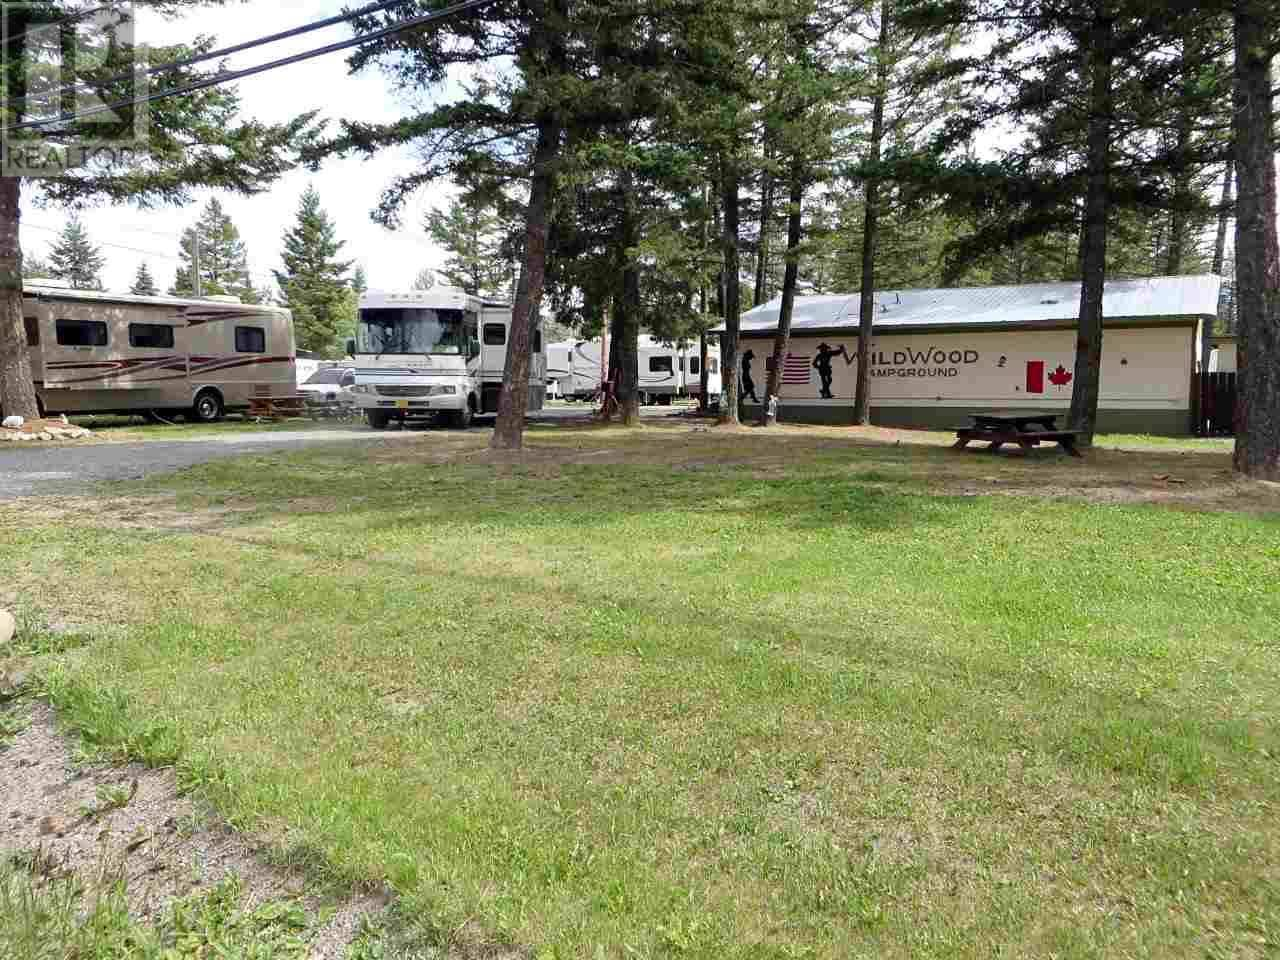 Townhouse for sale at 4195 Wildwood Rd Williams Lake (zone 27) British Columbia - MLS: C8030003